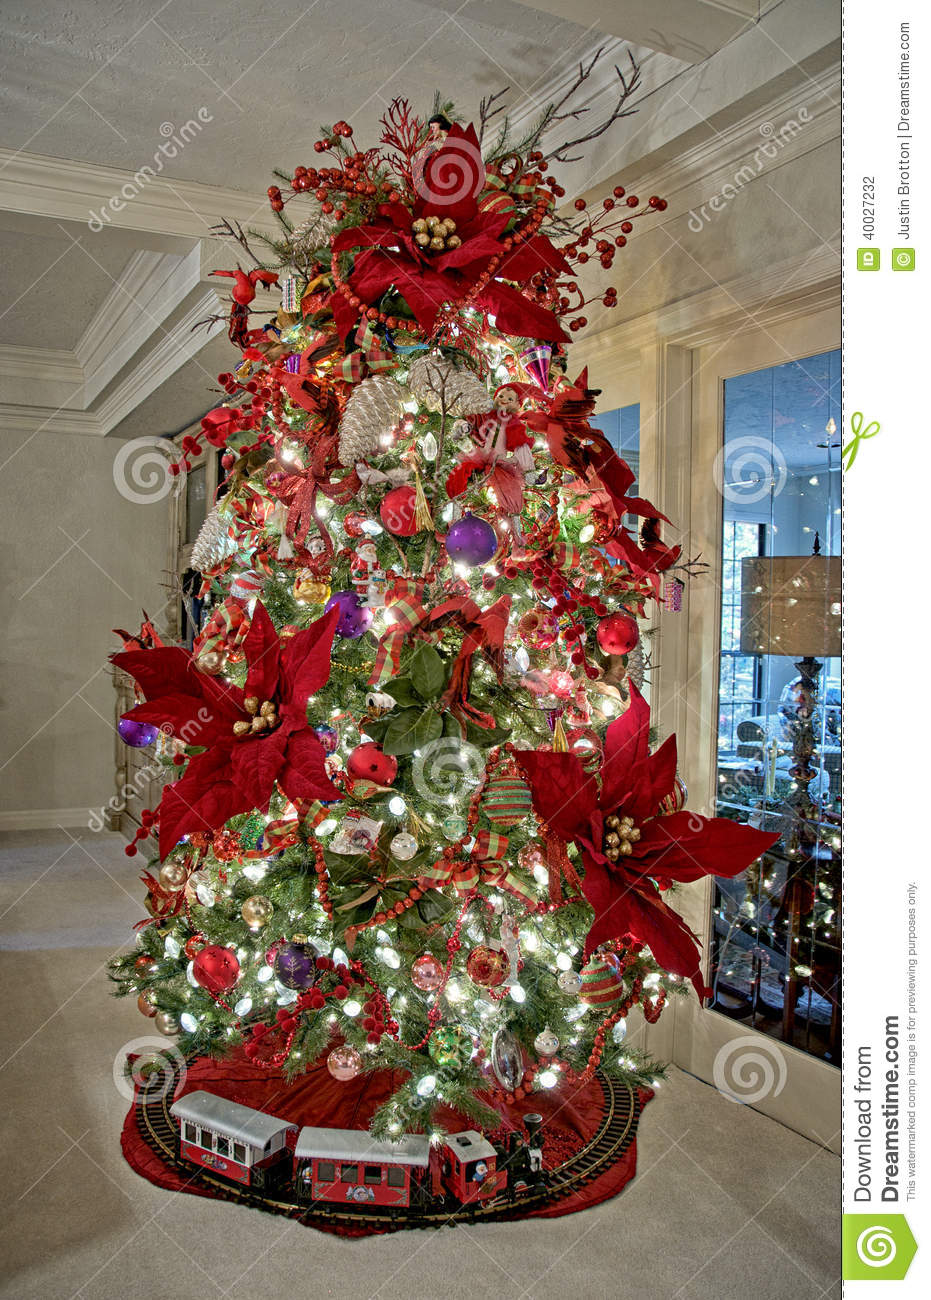 christmas tree ornaments stock photo image 40027232 - Poinsettia Christmas Tree Decorations